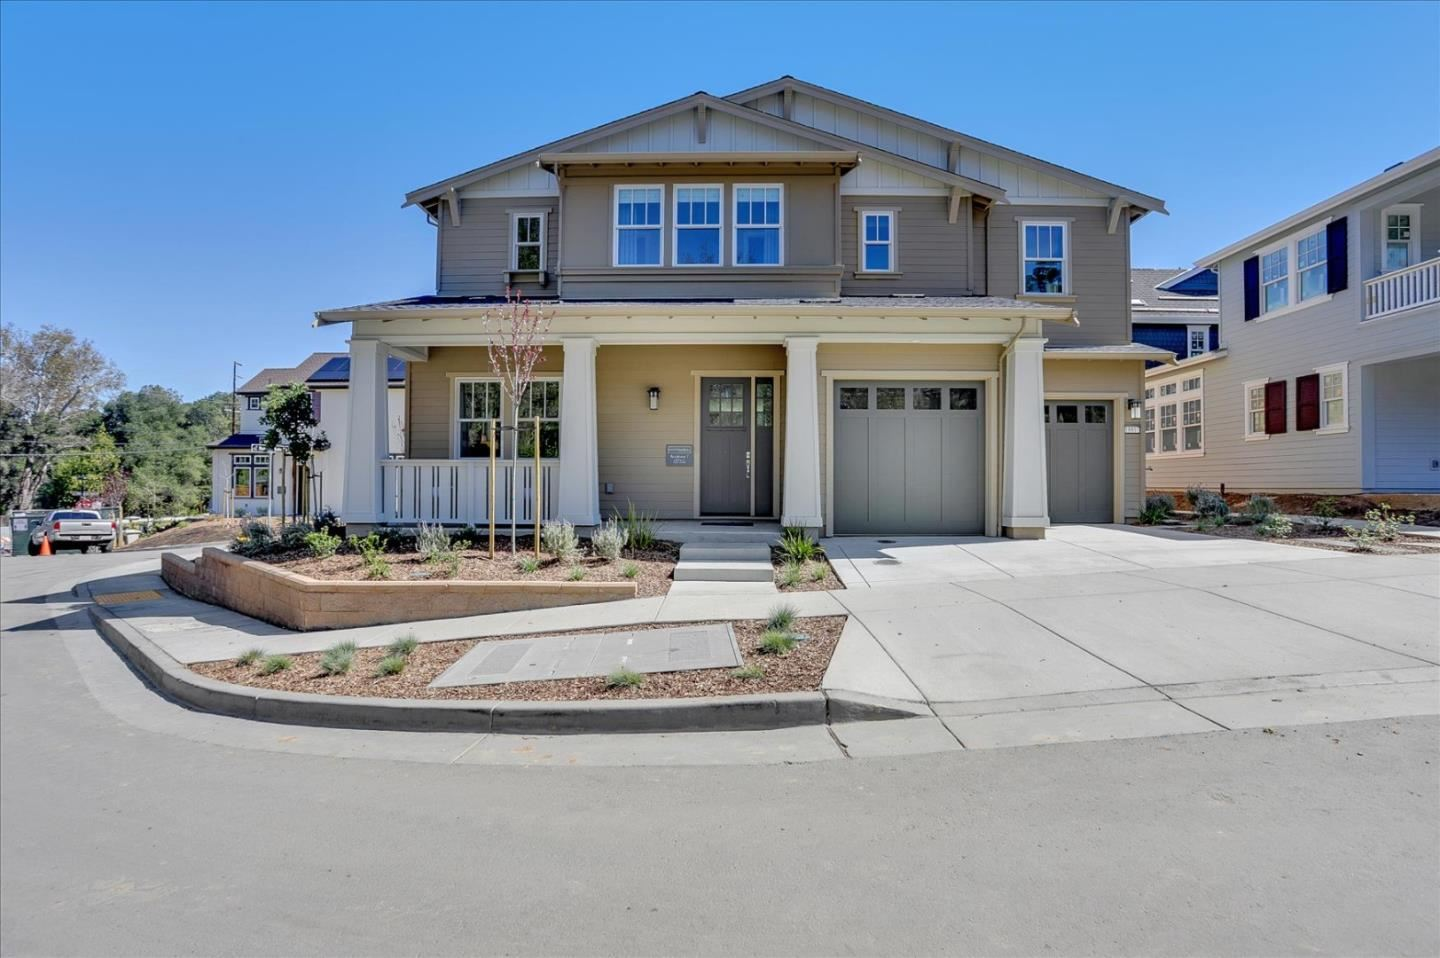 Photo for 18858 Montalvo Oaks Circle, MONTE SERENO, CA 95030 (MLS # ML81839608)